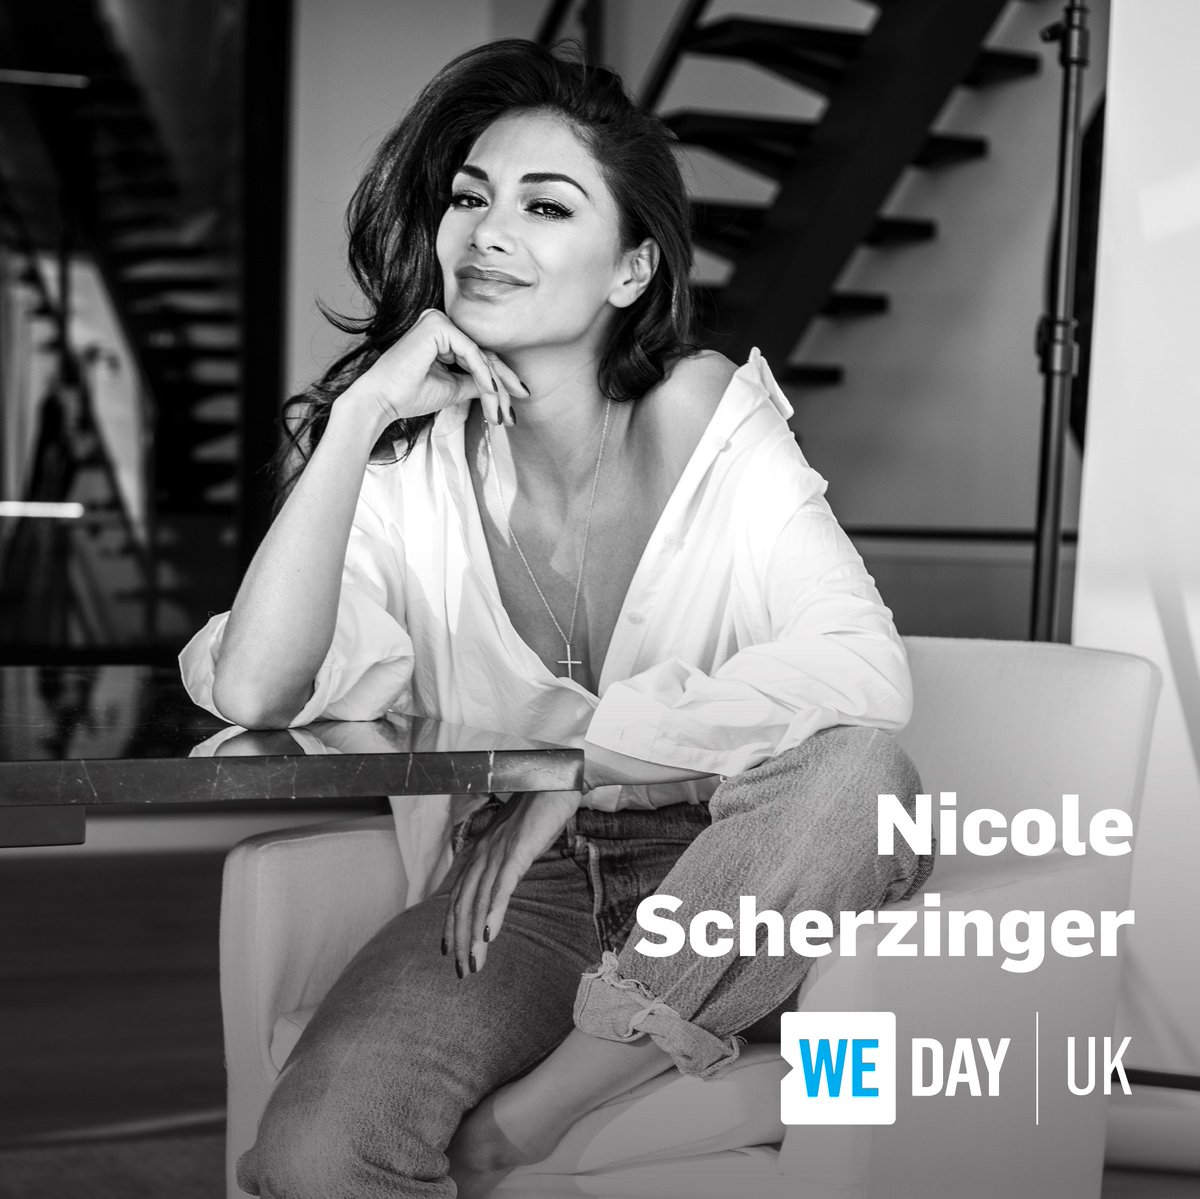 RT @WEMovement: ????THE #WEday UK LINEUP IS HERE ????  So excited to welcome @NicoleScherzy! See you March 6th???? https://t.co/6RXAEG54xx